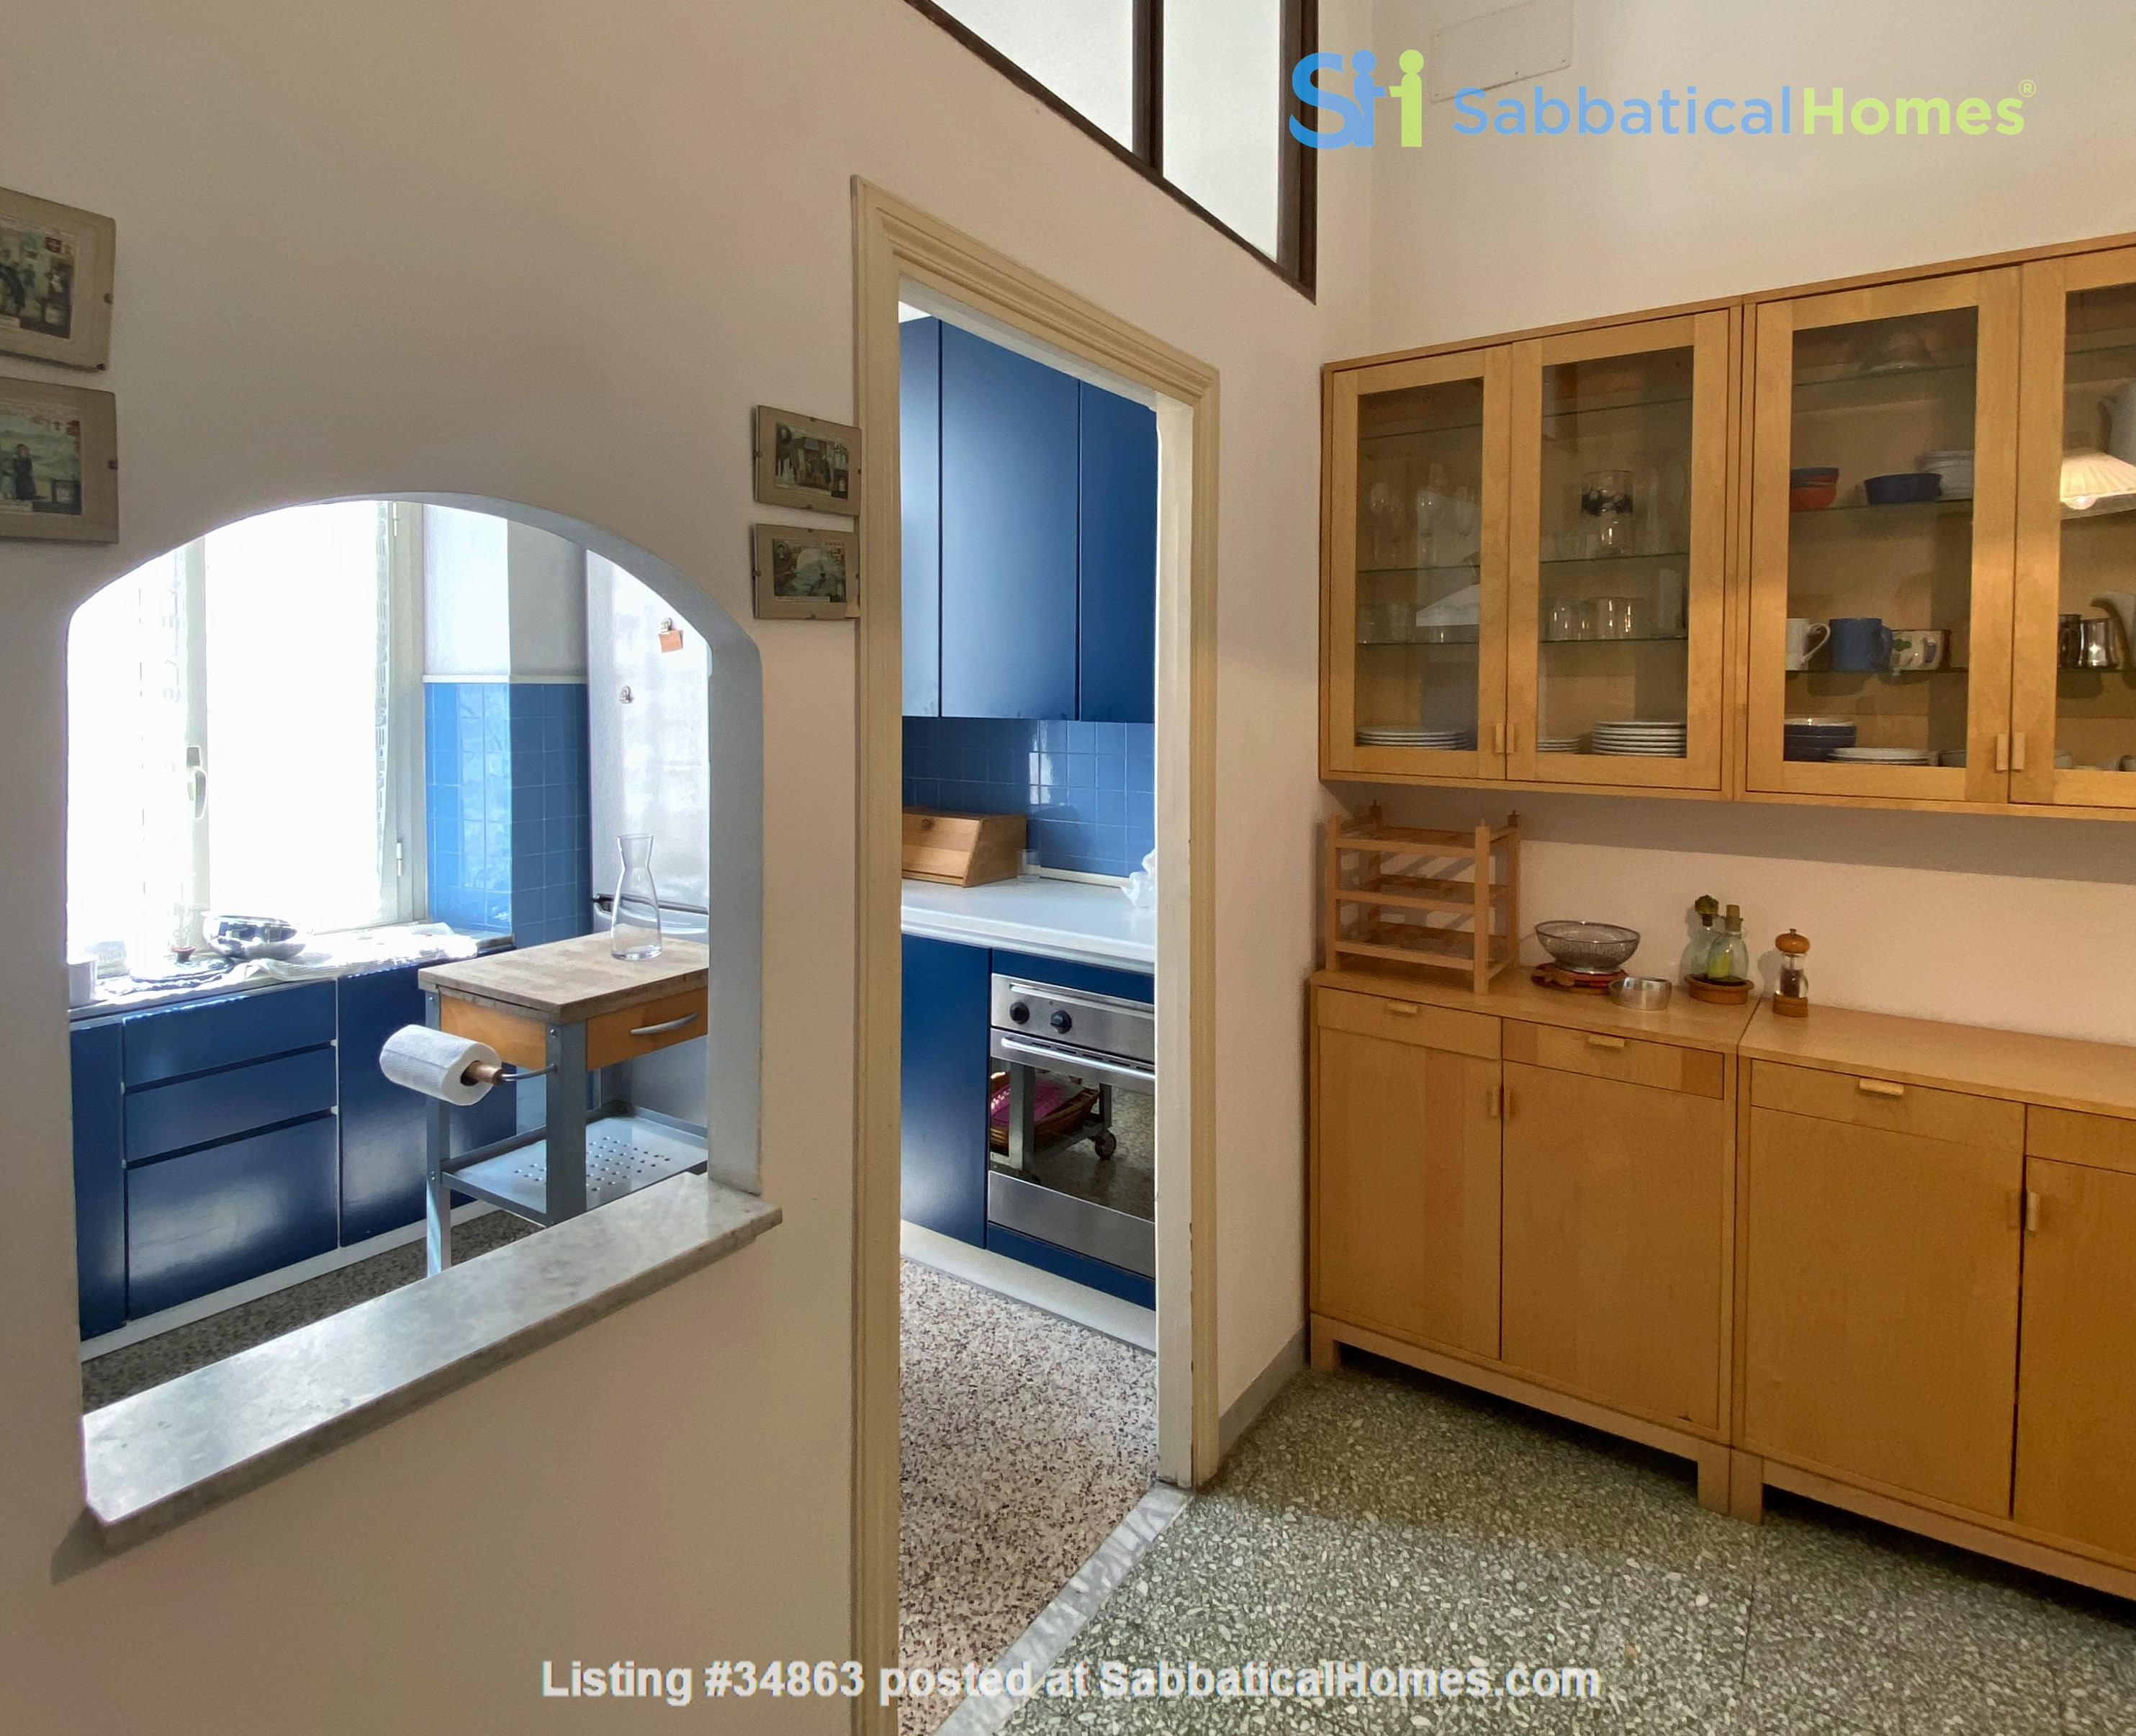 2 BR, 2 BA, spacious and comfortable apartment in Rome, Trastevere Home Rental in Rome 4